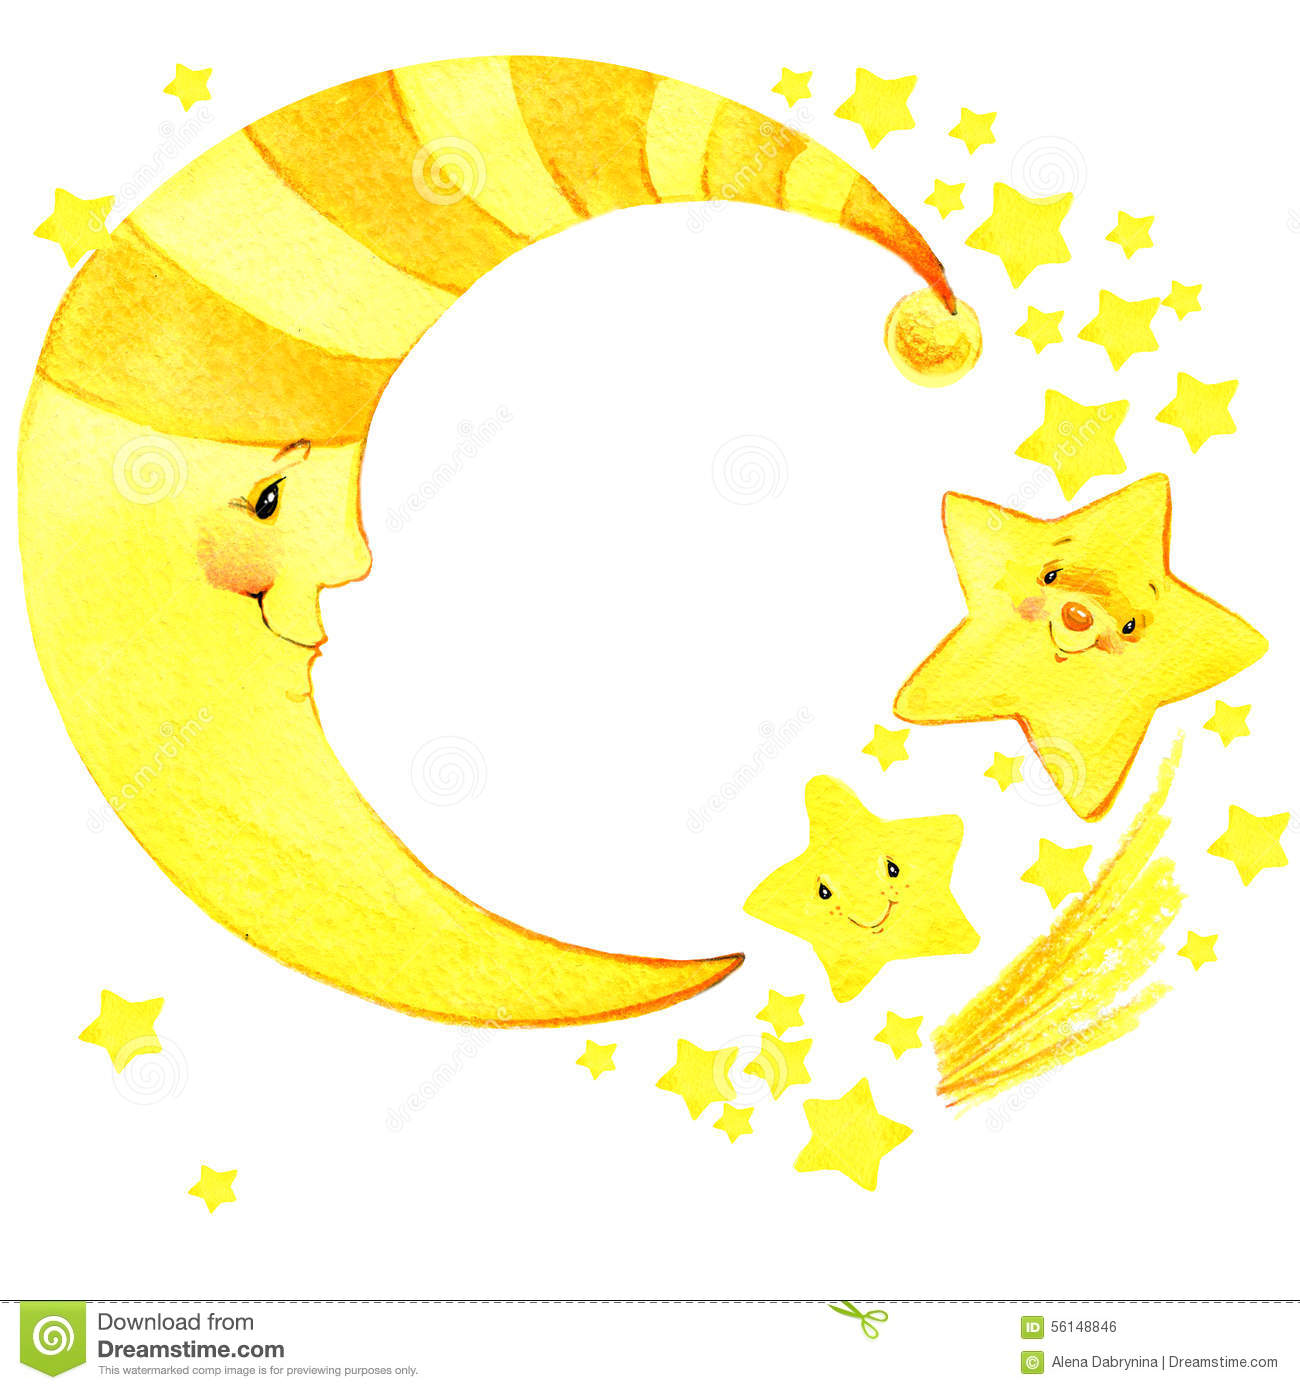 Cartoon moon and stars watercolor illustration stock for Images of stars for kids